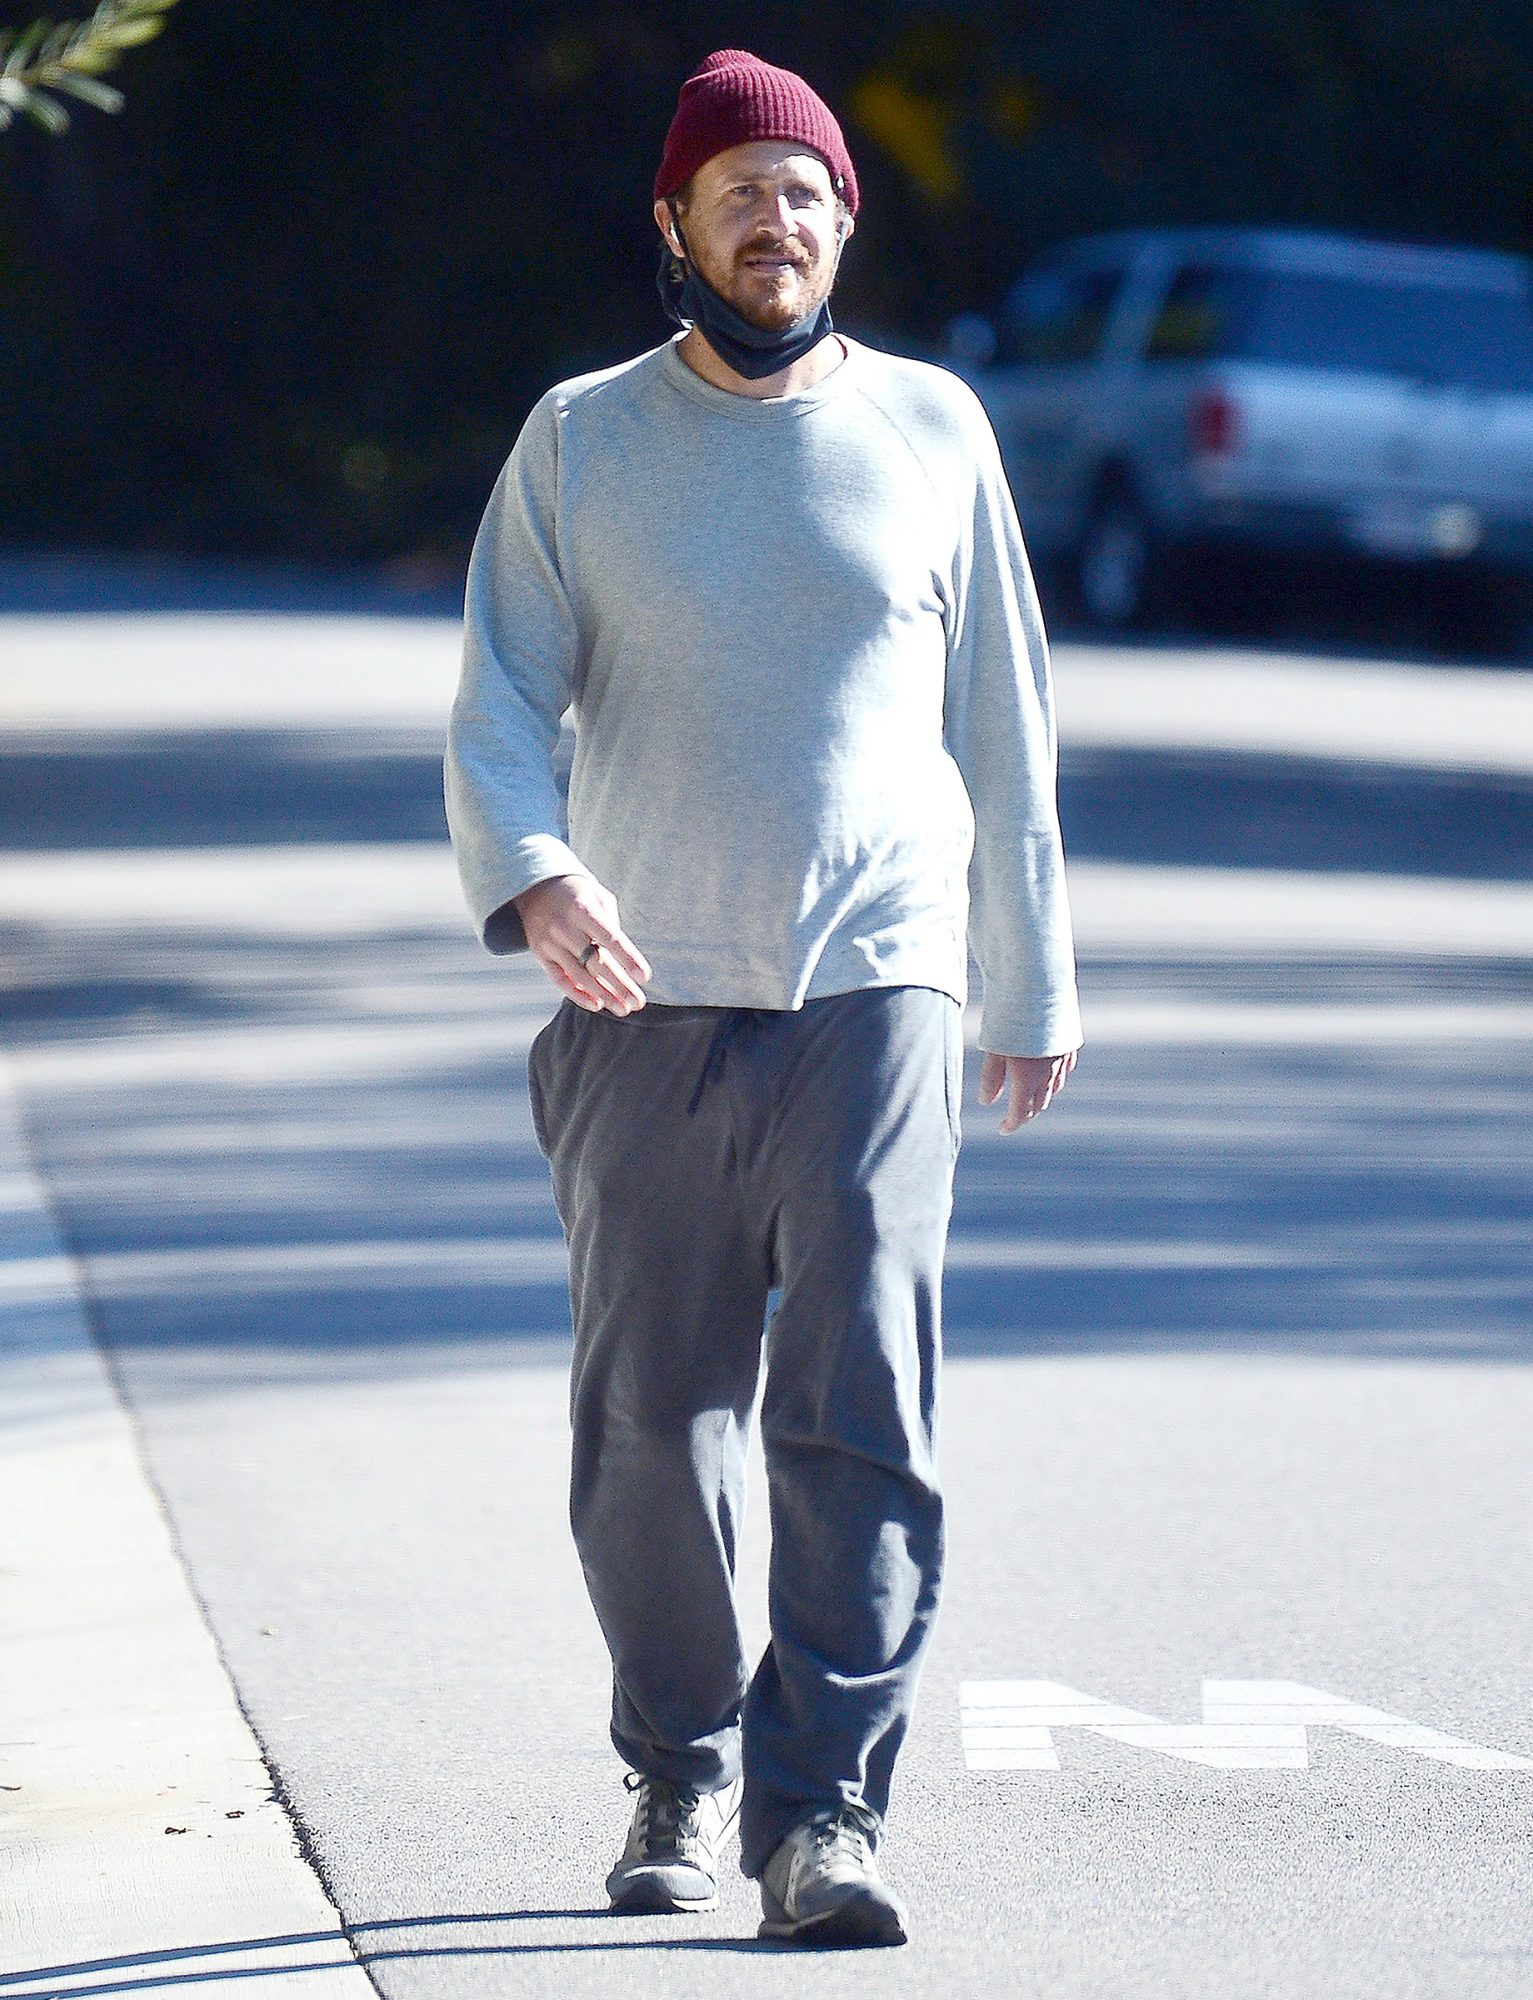 Jason Segel is Nearly Unrecognizable as He Steps Out For a Stroll in Los Angeles.